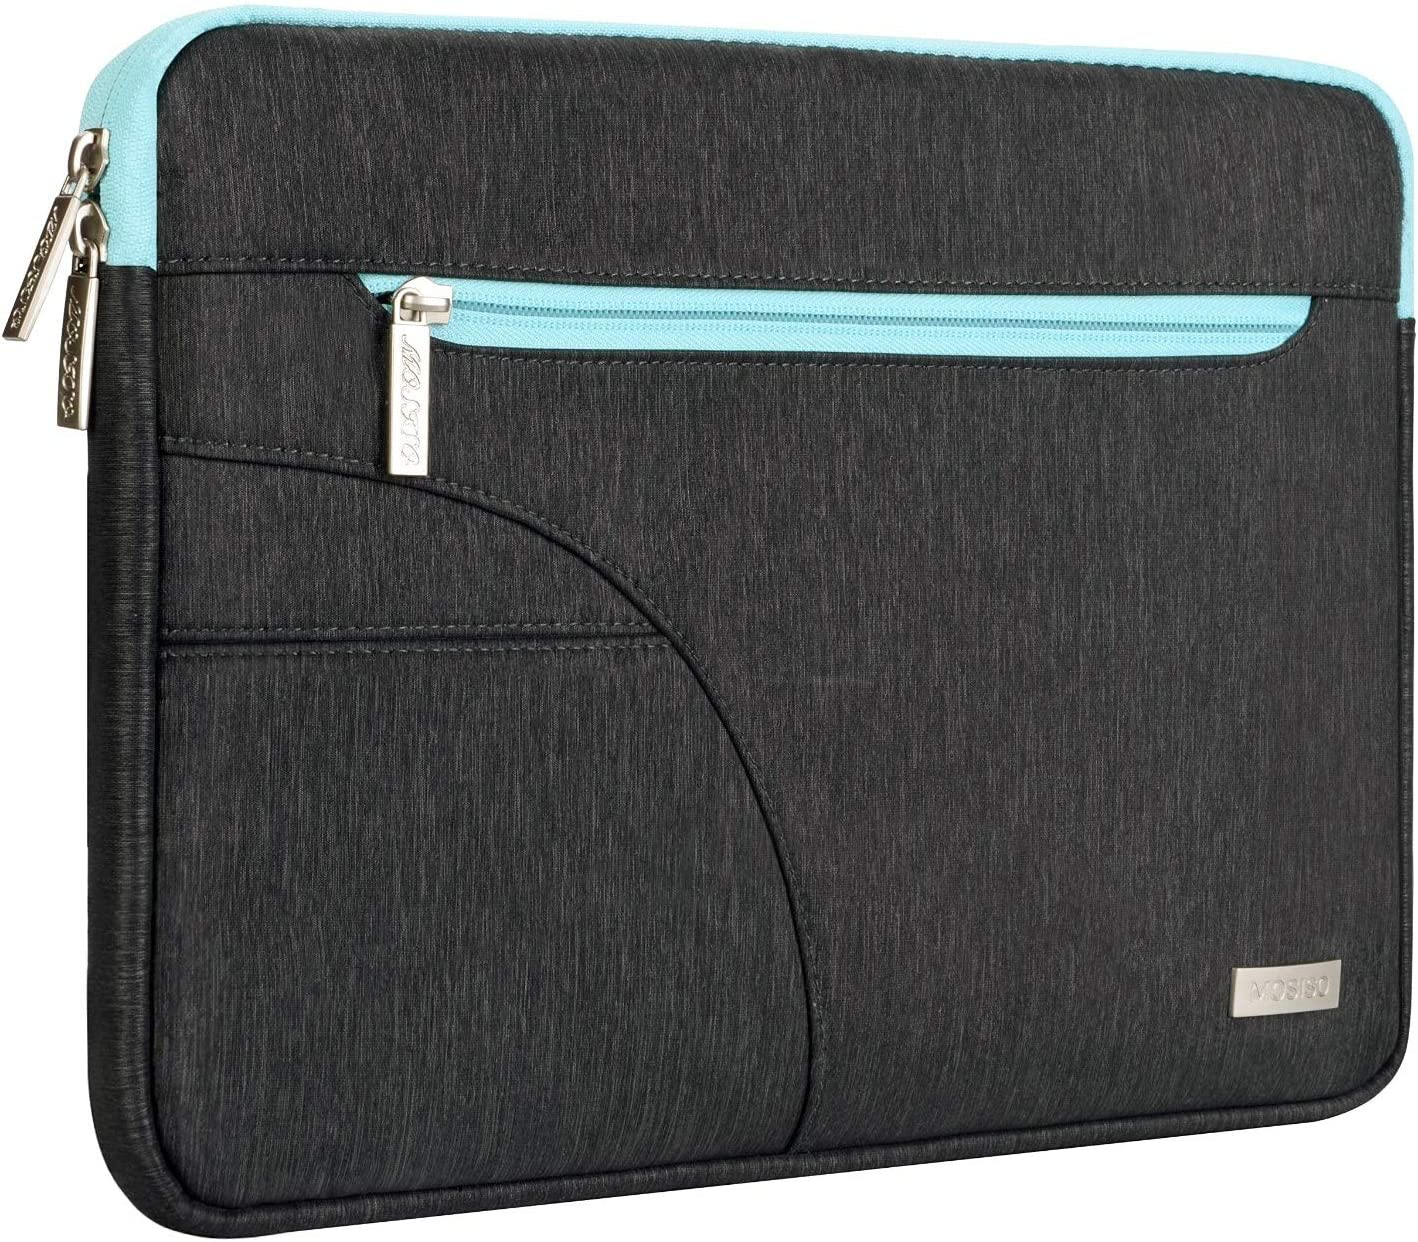 MOSISO Laptop Sleeve Compatible with 13-13.3 inch MacBook Pro, MacBook Air, Ultrabook Netbook, Polyester Carrying Case Bag with Accessory Pocket, Black & Hot Blue